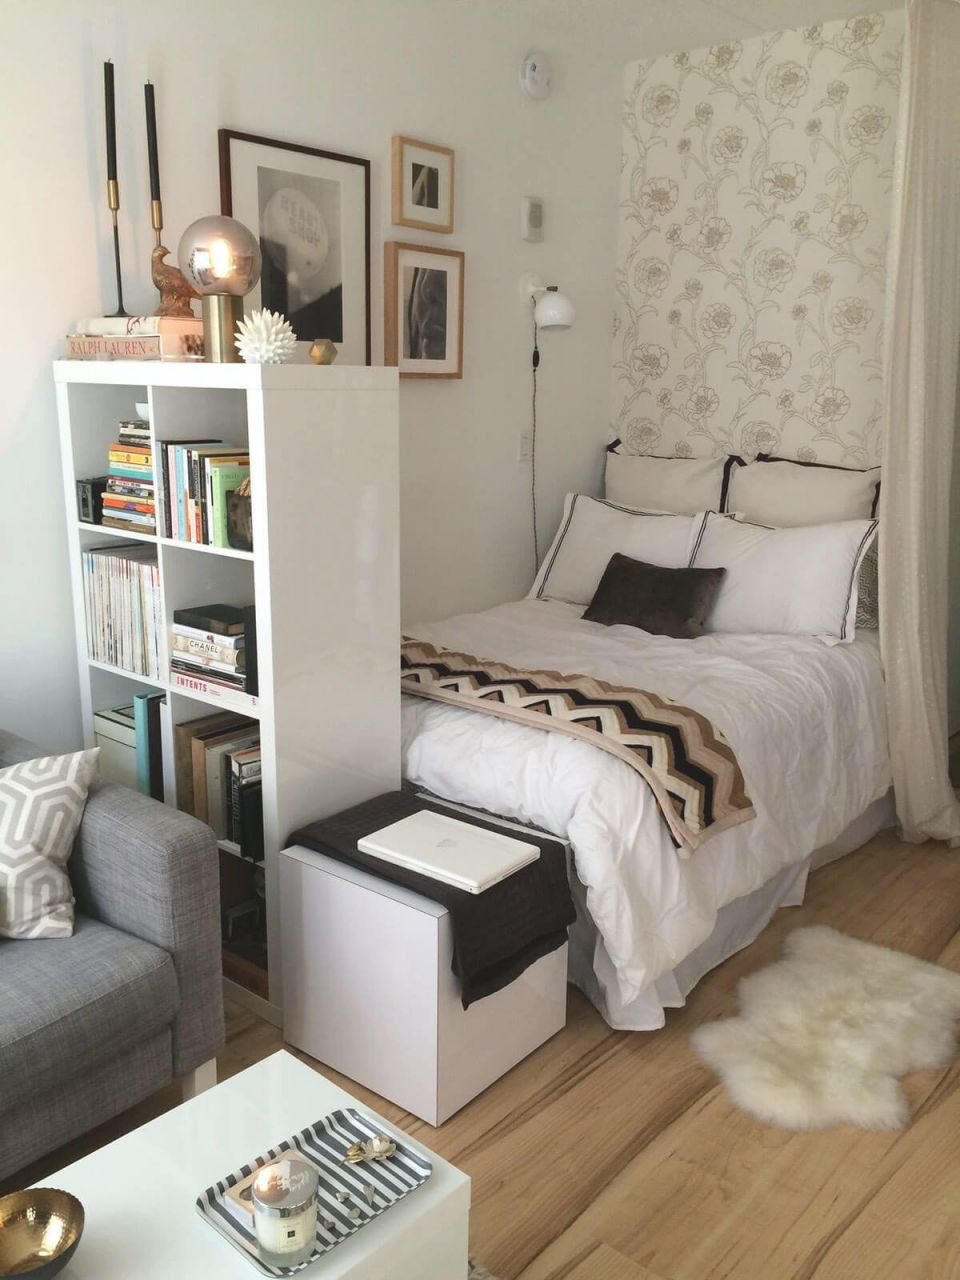 Small Bedroom Ideas With A Tall Bookshelf | Apartment Decor throughout Small Bedroom Decorating Ideas